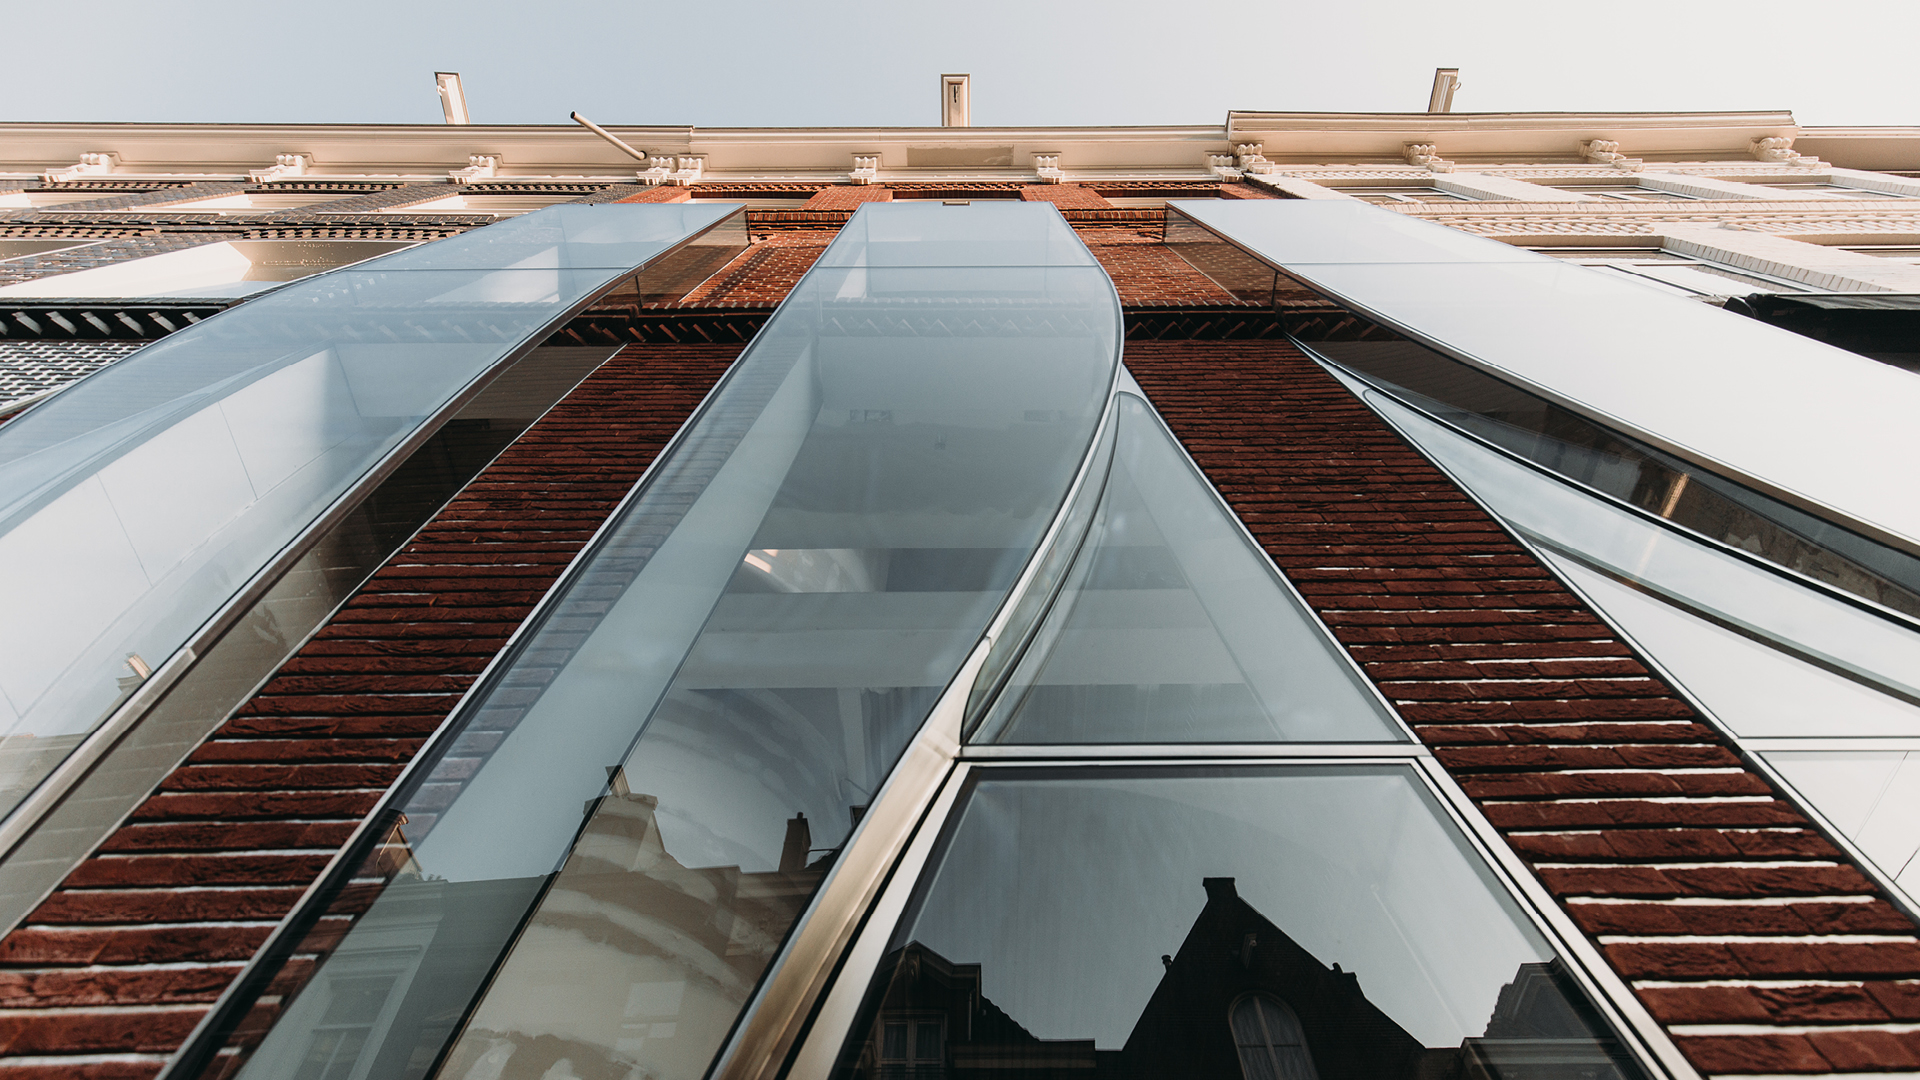 The Looking Glass designed by Dutch architecture firm UNStudio crafts form and function for fashion | P.C. Hooftstraat 138 | UNStudio | STIRworld